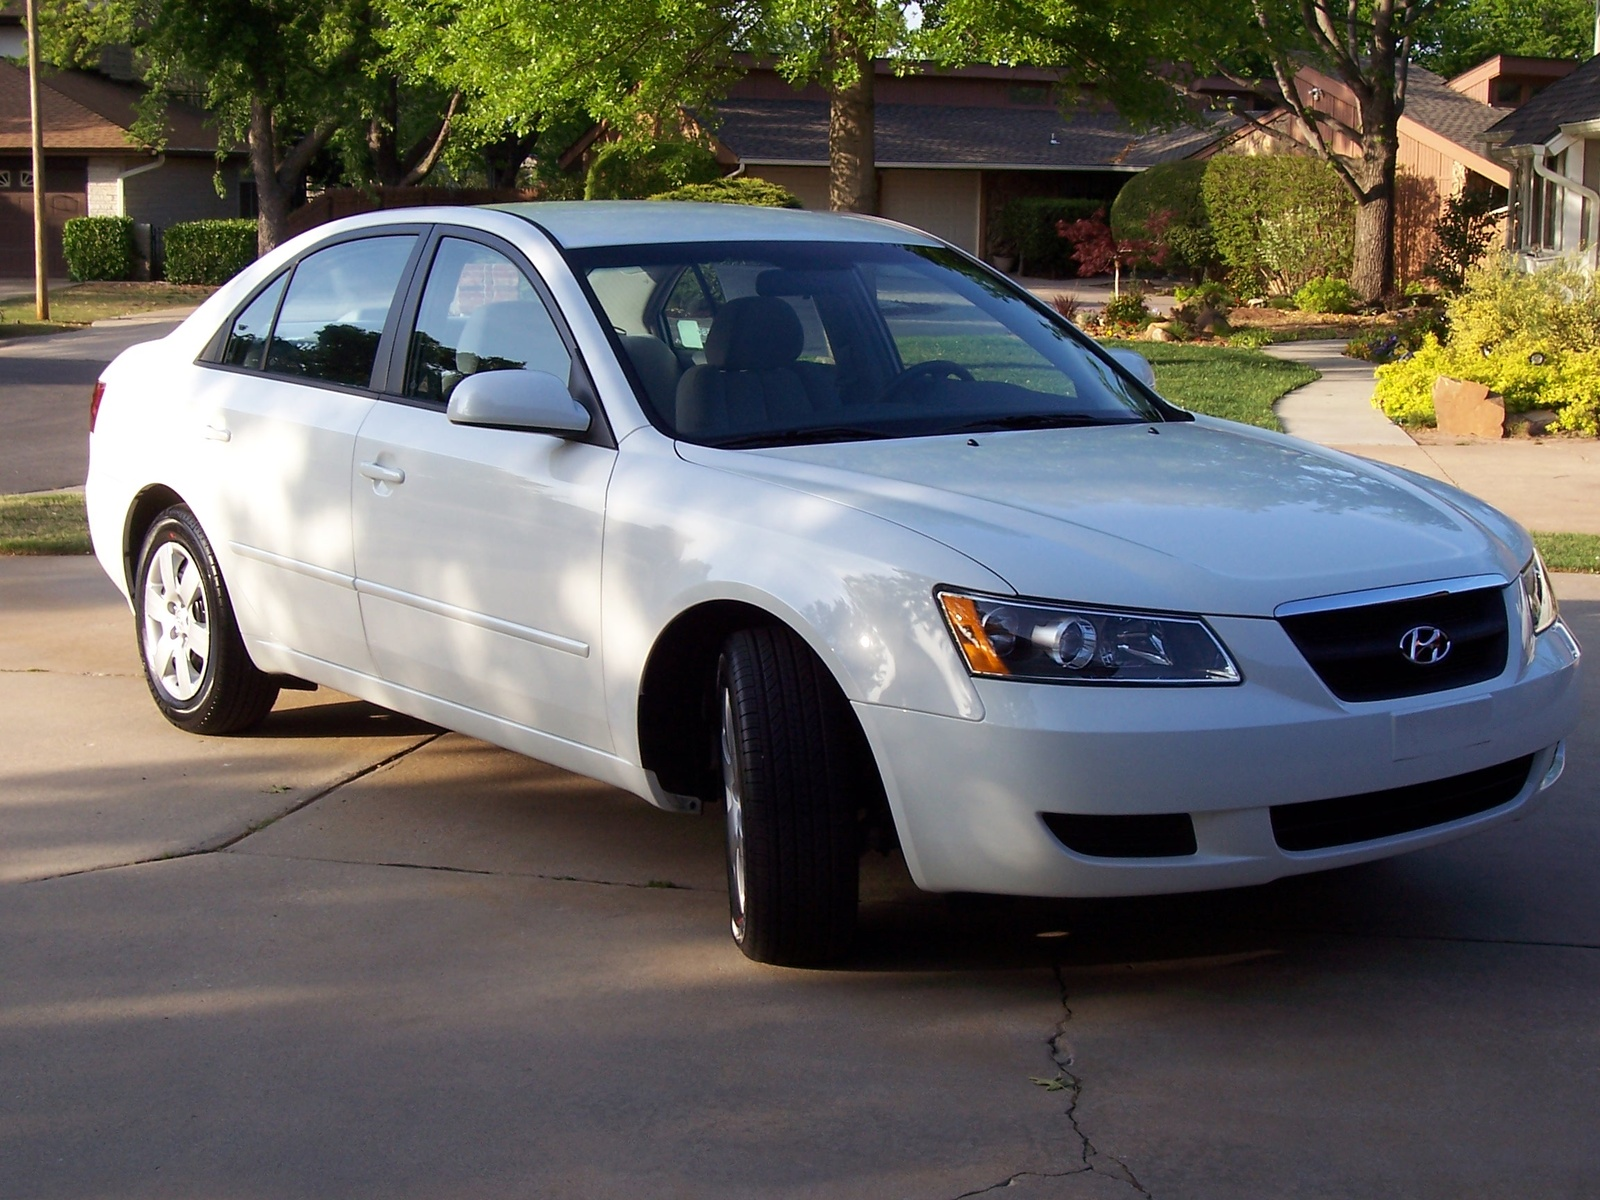 Picture of 2008 Hyundai Sonata